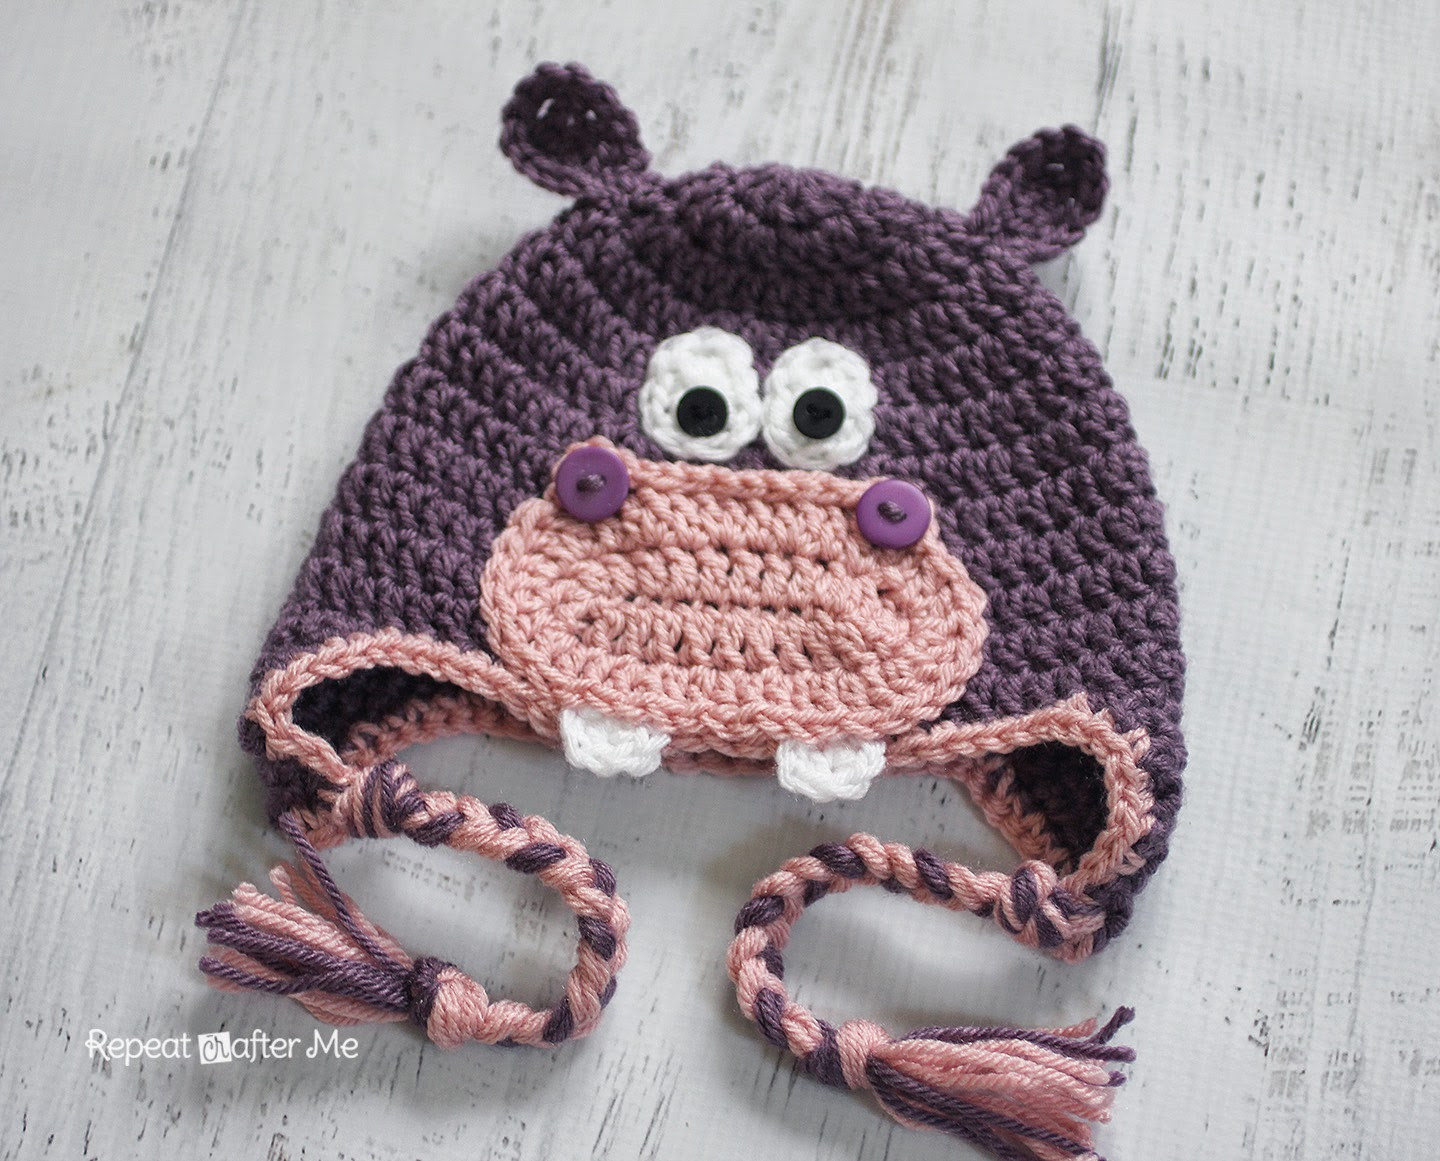 Crochet Hippo Pattern Free Fresh Repeat Crafter Me Crochet Hippo Hat Pattern Of Awesome 40 Pics Crochet Hippo Pattern Free